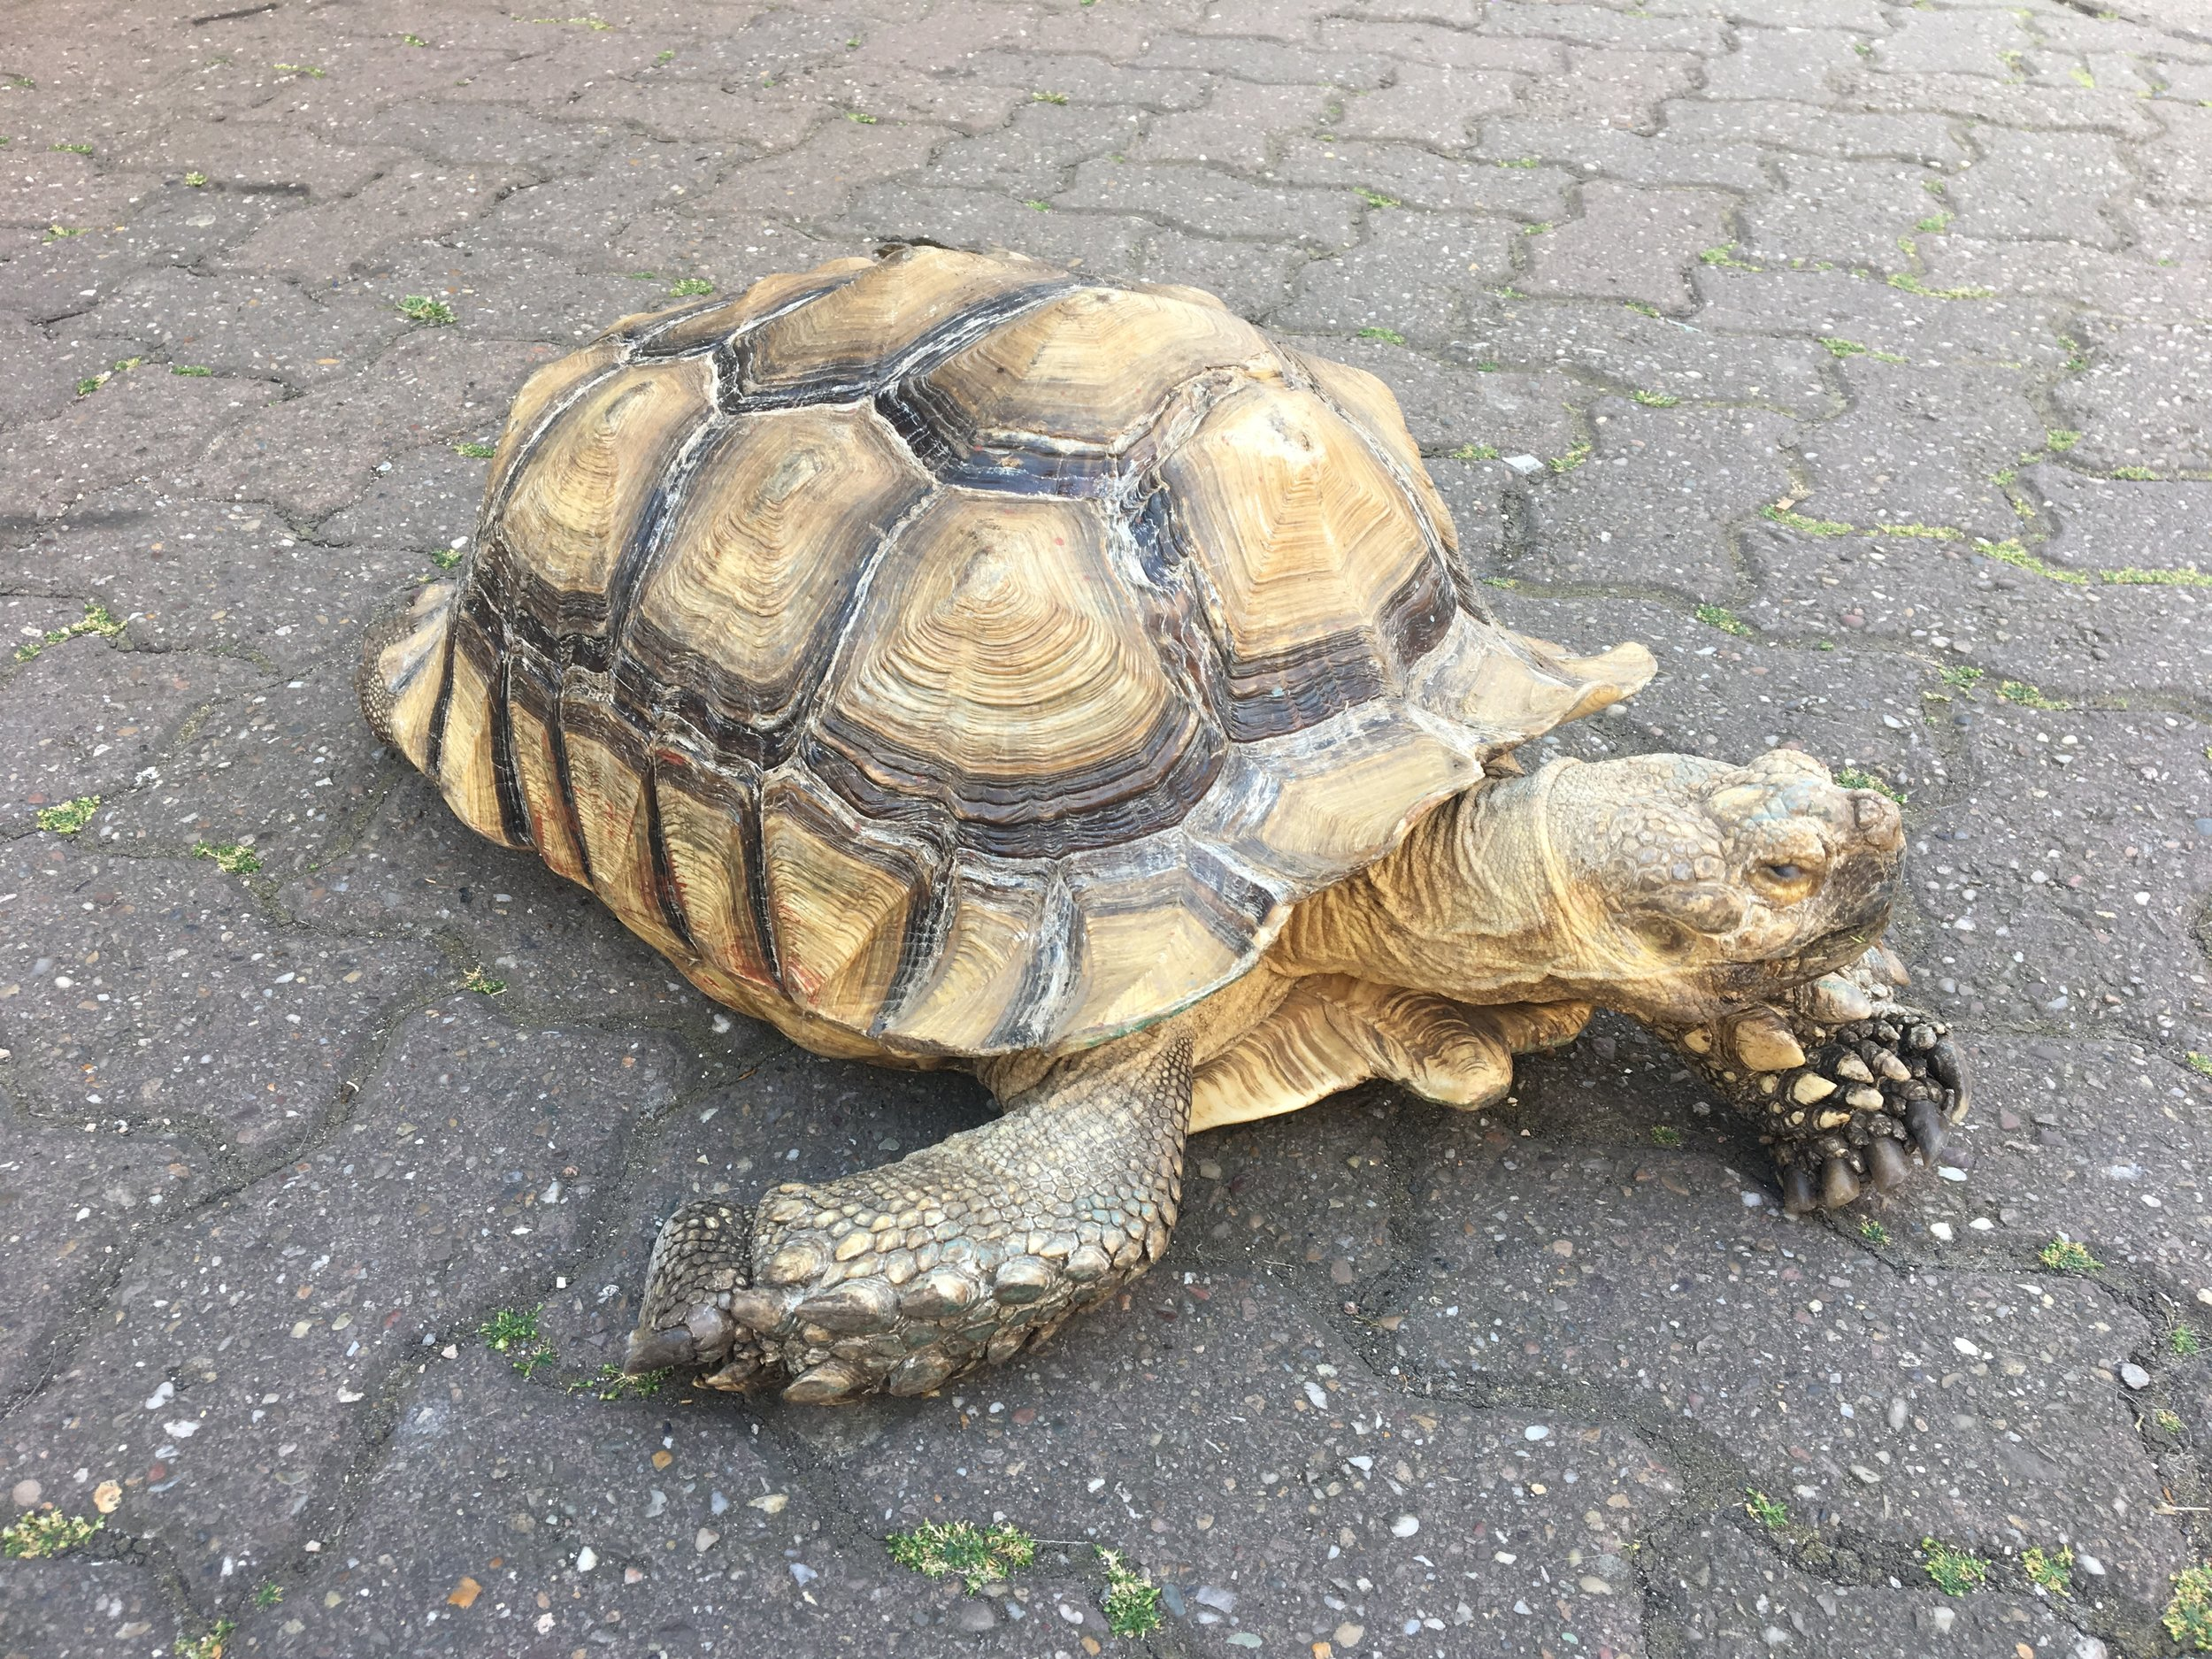 Tortoise wandering around Uttoxeter High Street